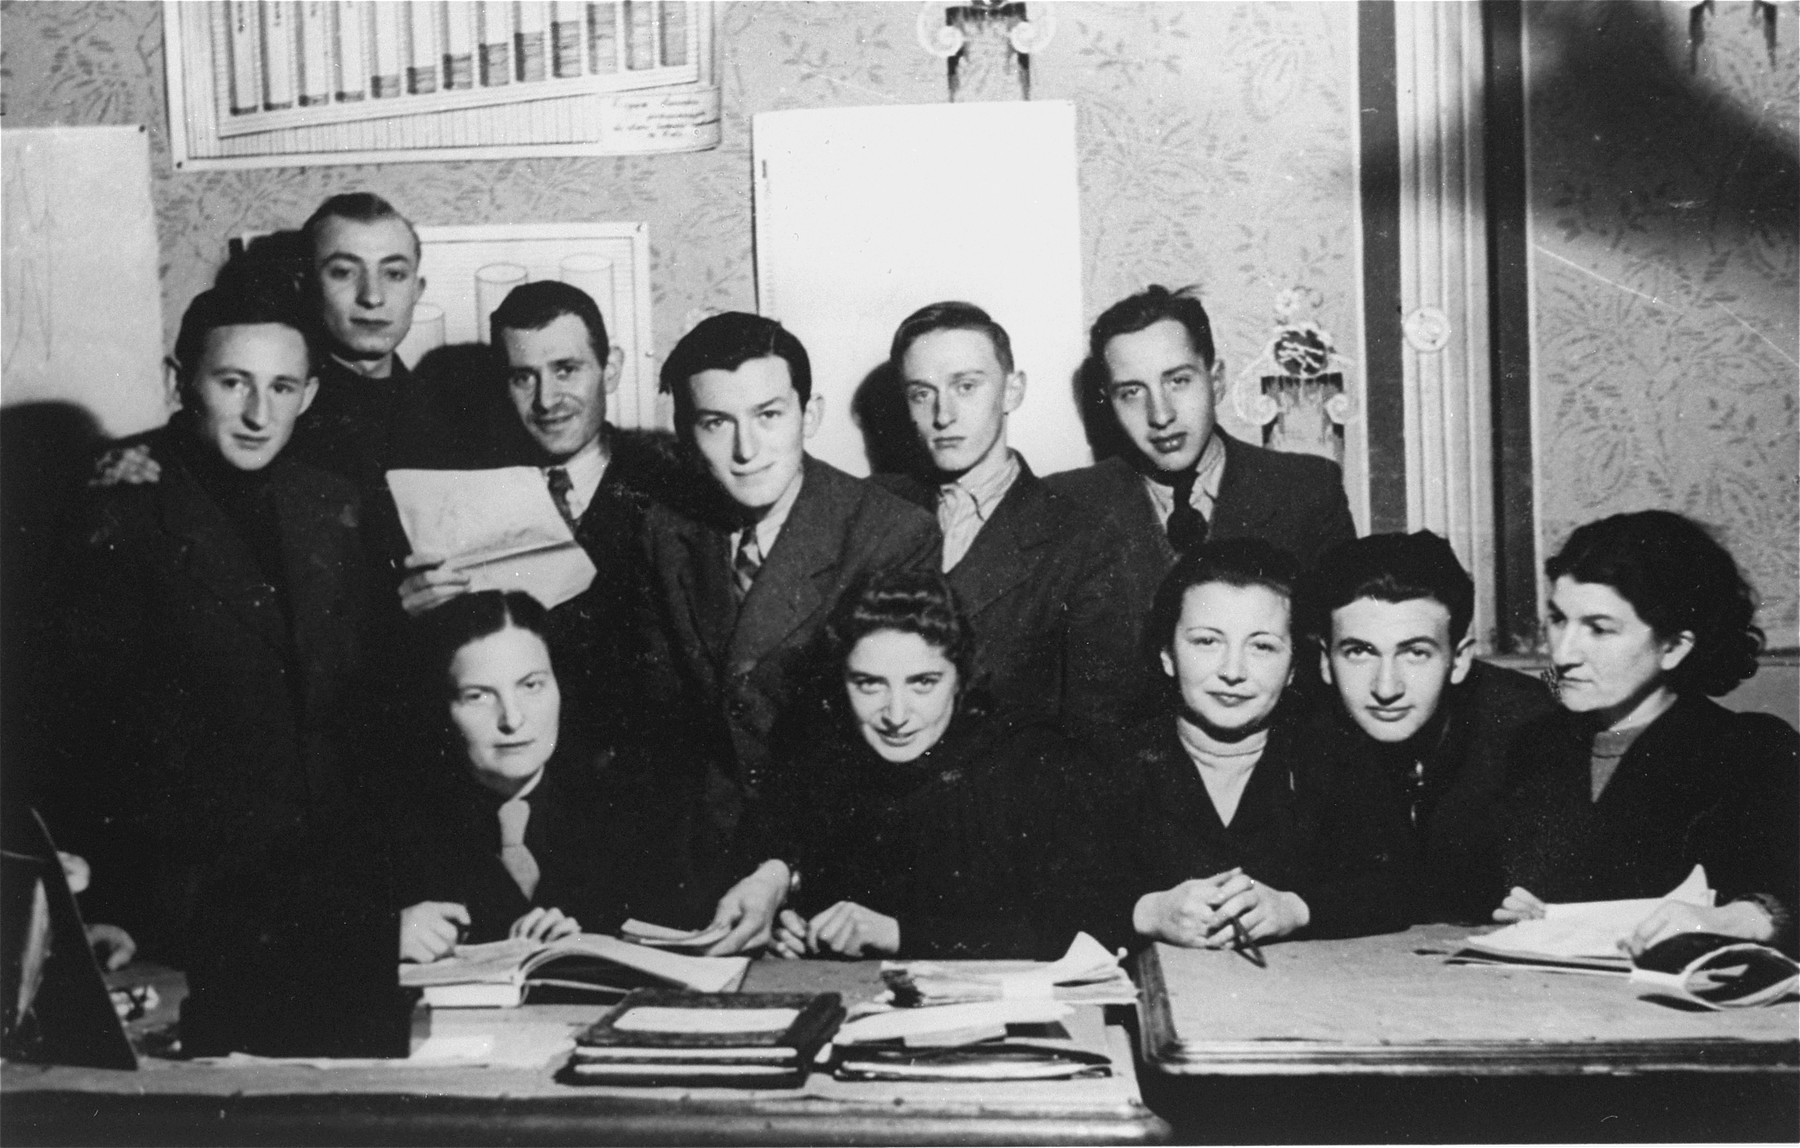 Group portrait of members of the administrative staff of the Kielce ghetto Judenrat (Jewish Council) in their office.  This photo was one the images included in an official album prepared by the Judenrat of the Kielce ghetto in 1942.